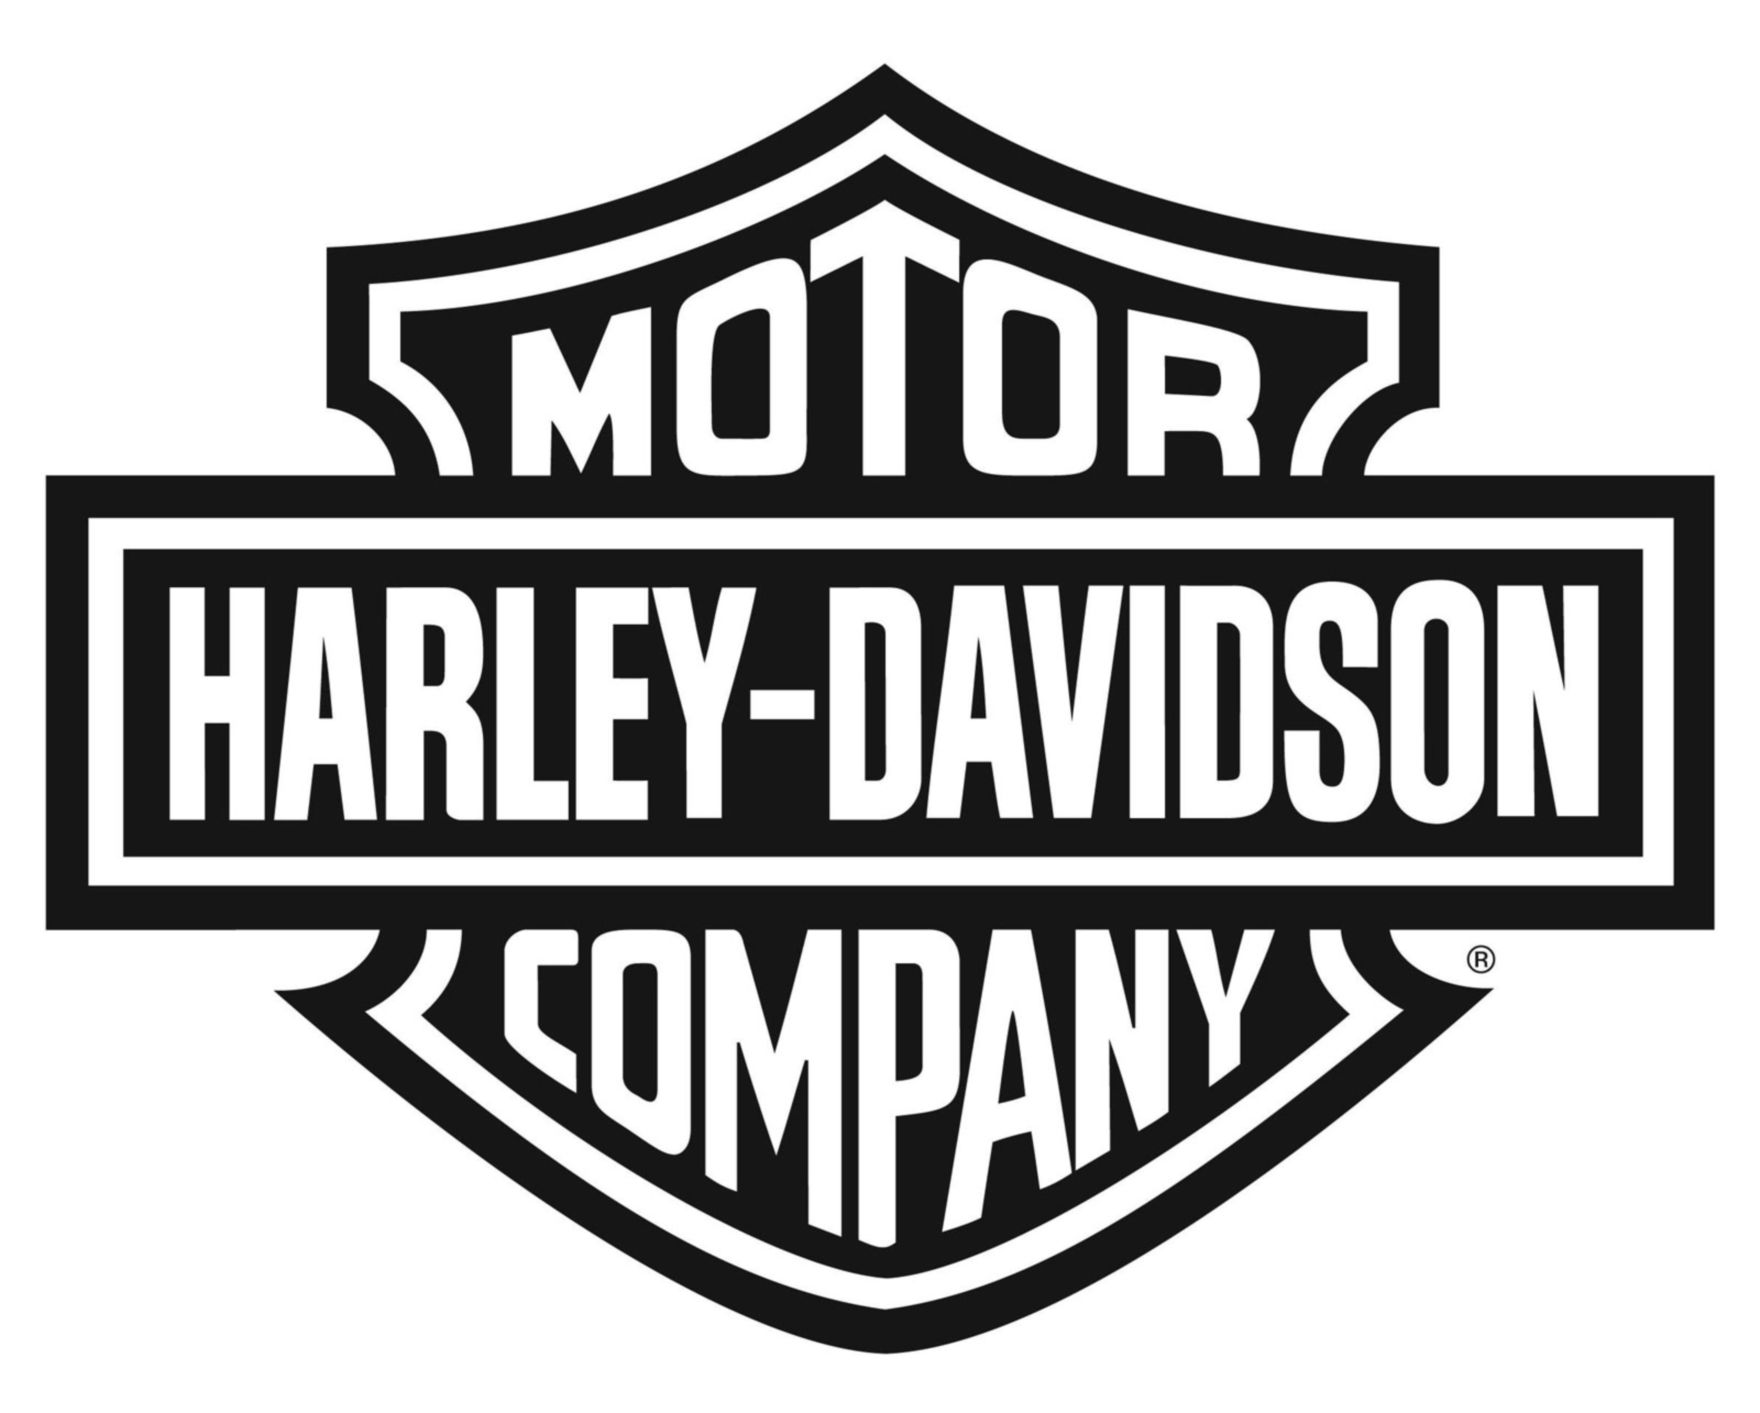 Download free HD Harley Logo Black And White Vector Wallpaper, image